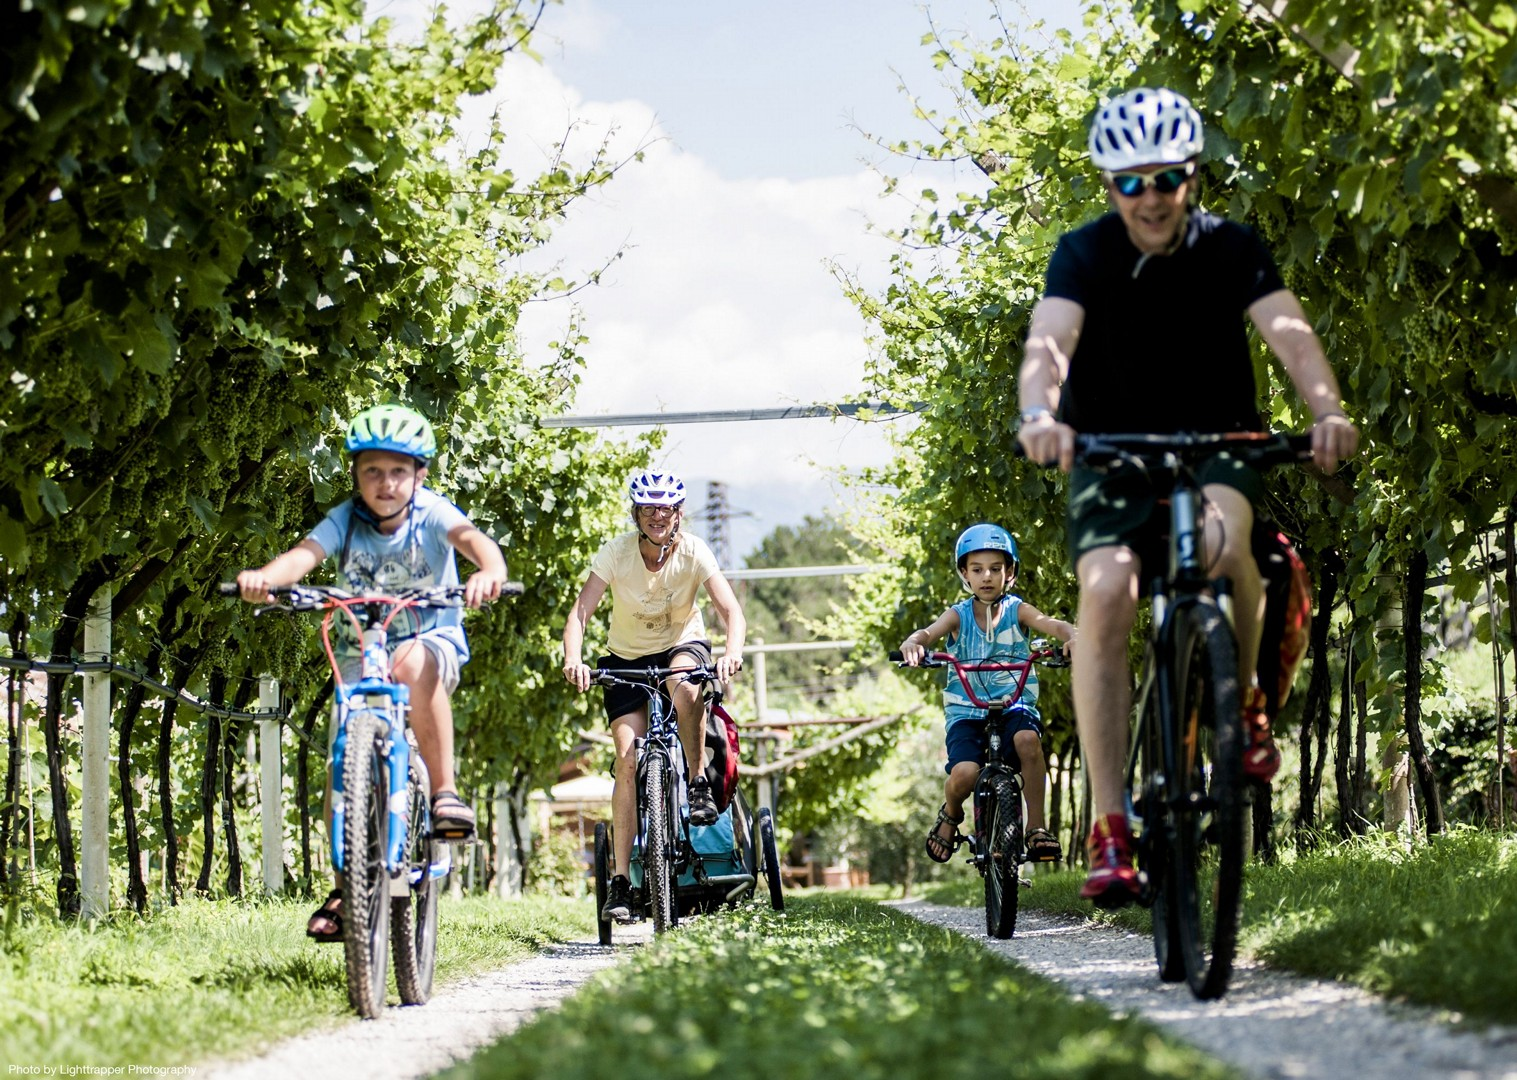 italy-spirit-of-umbria-self-guided-leisure-cycling-holiday.jpg - Italy - Spirit of Umbria - Family Cycling